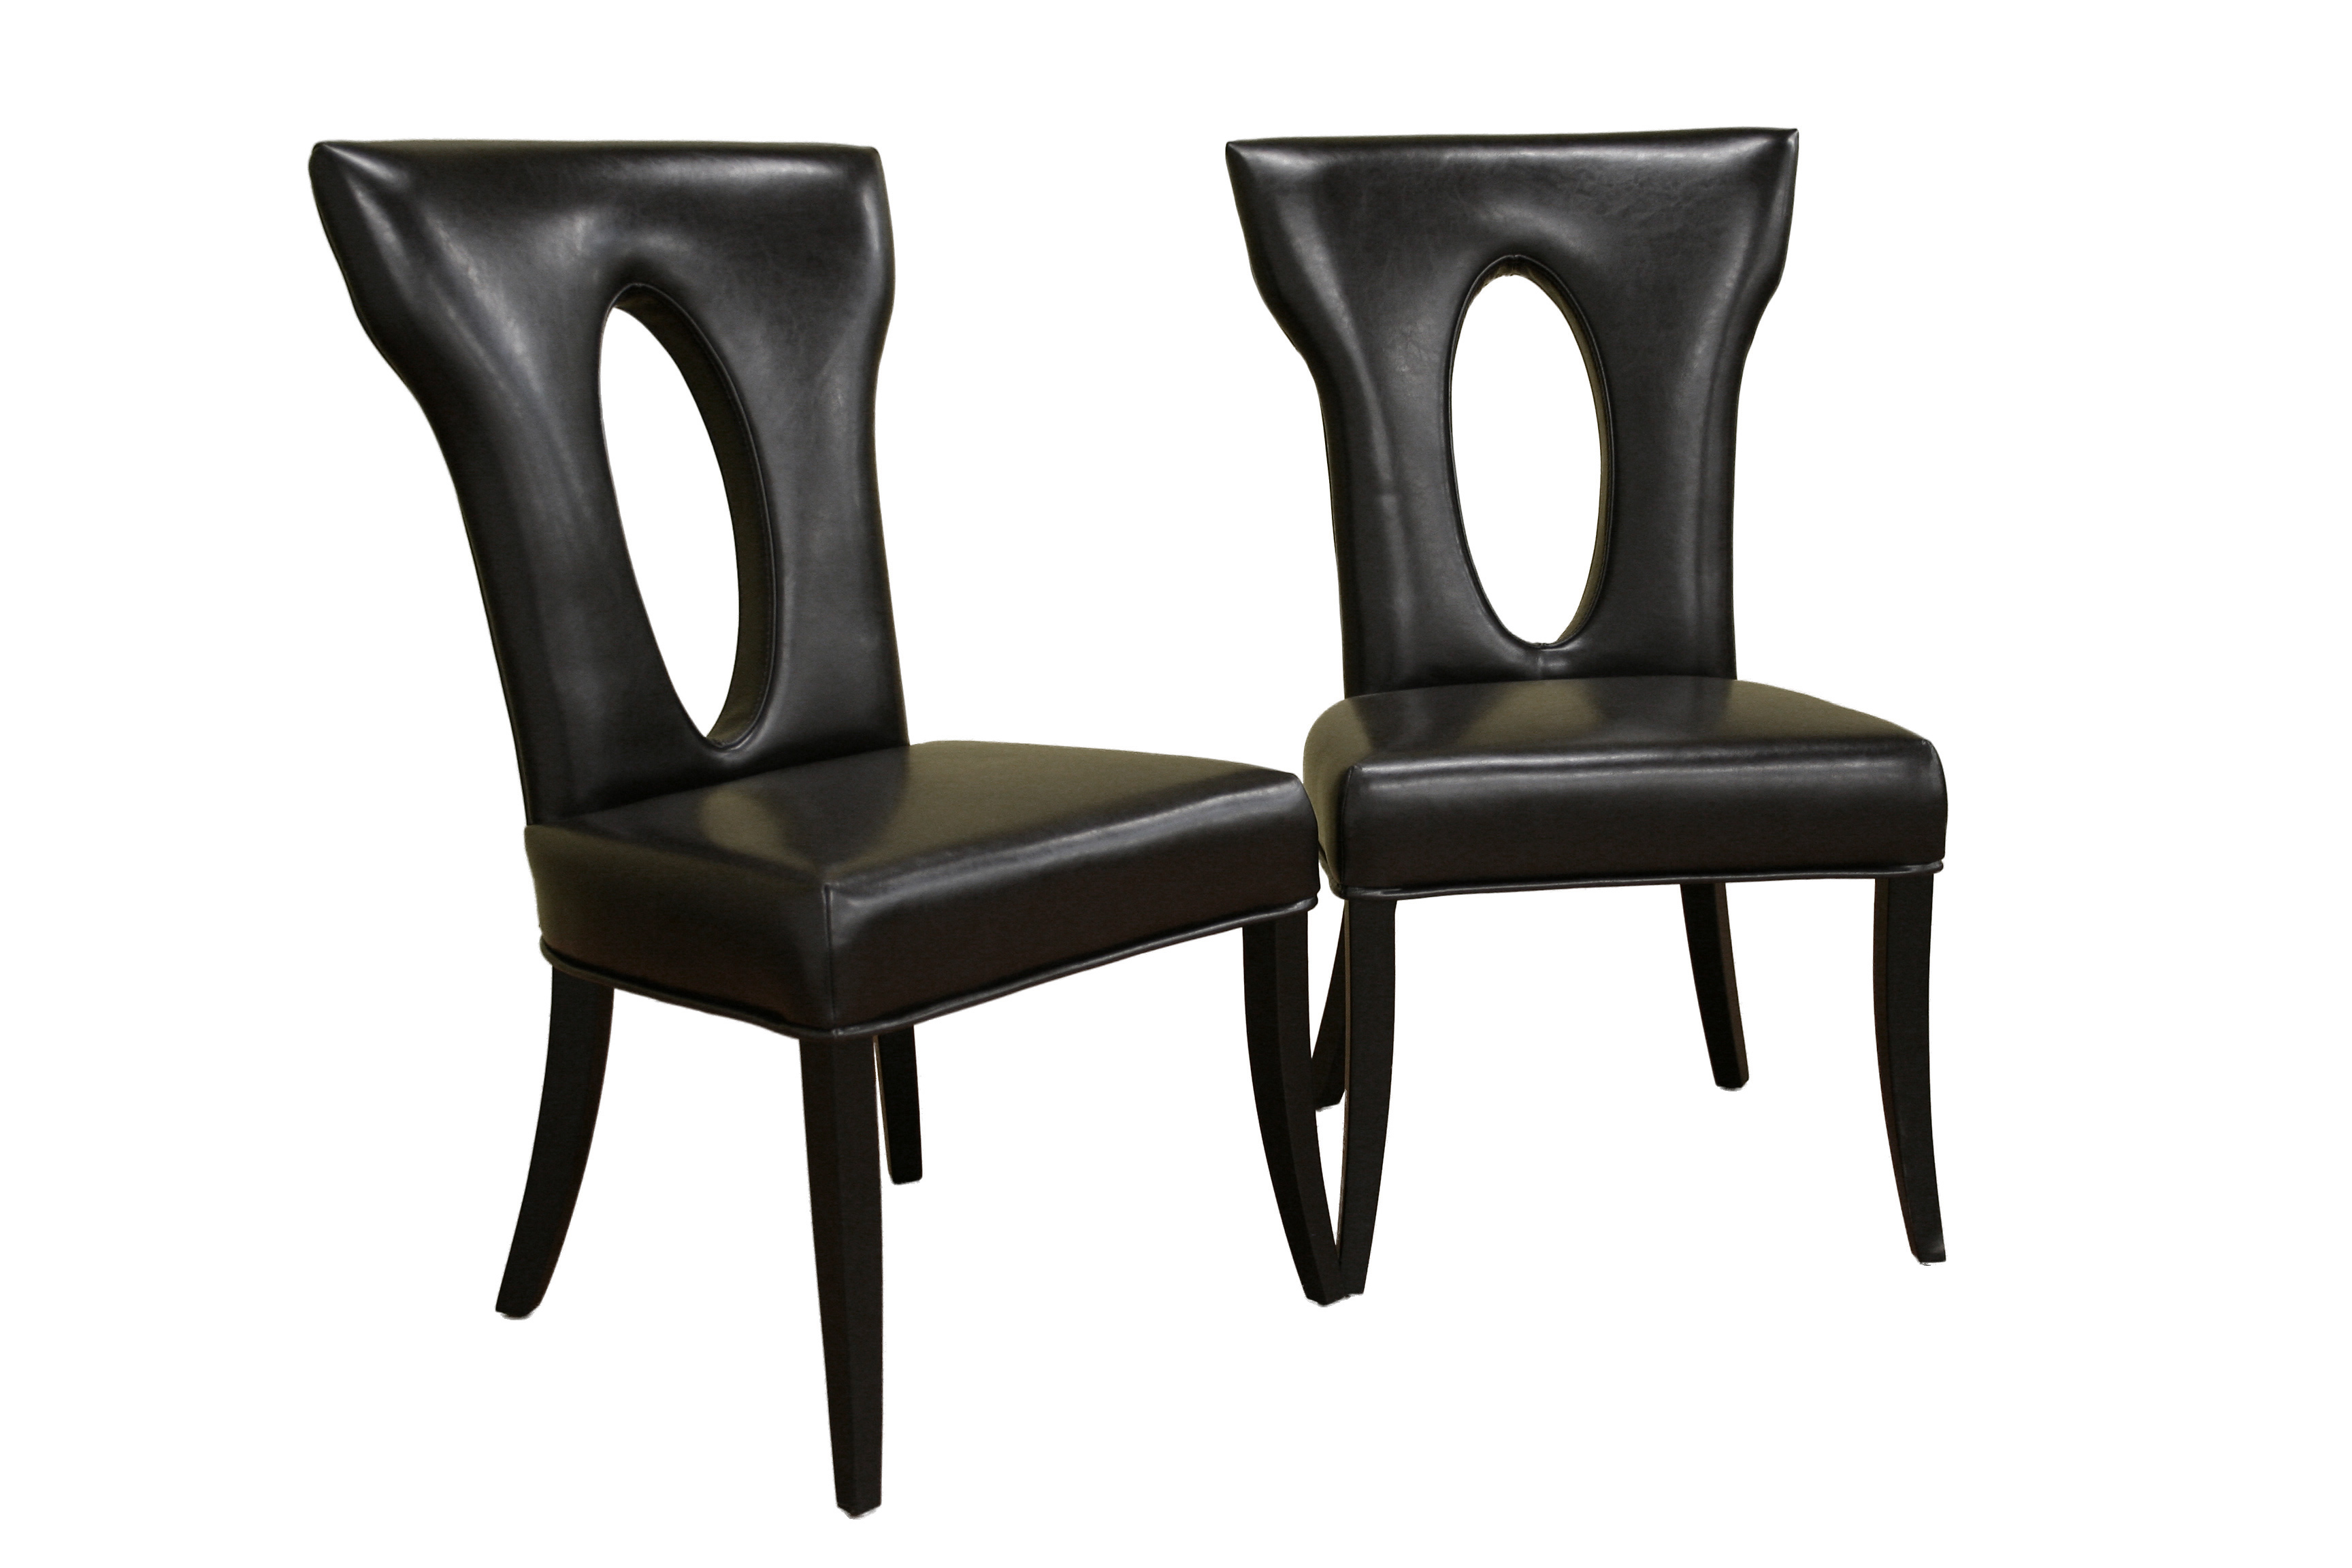 Black Leather Dining Chairs Black High Back Dining Chairs Chair Pads And Cushions